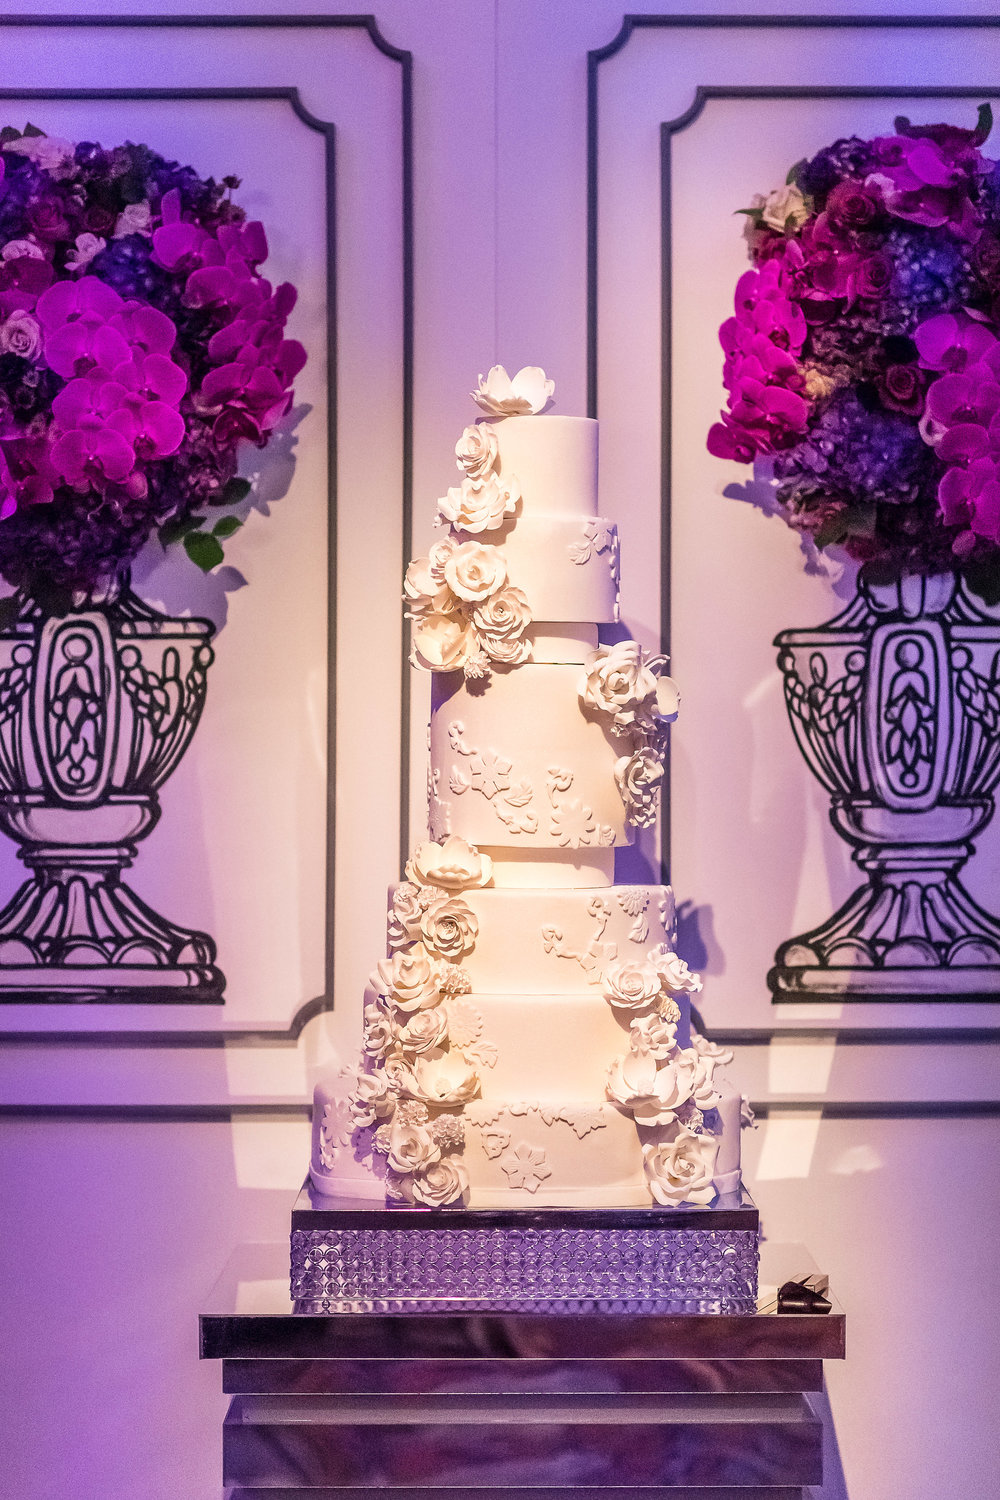 White wedding cake with lace fondant and sugar roses.  Living flower wall.  Wedding Planner:  Andrea Eppolito Events  |   Photography  Brian Leahy   |  Videography  HOO Films   |  Venue & Catering:  Mandarin Oriental  / Waldorf Astoria |  Floral & Decor:  Destinations by Design    |  Lighting:  LED Unplugged  |  Music:  DJ Breeze II   |  Hair & Make Up:  Amelia C & Co   |  Invitations by  Bliss & Bone   |  Menu and Escort Cards by  Meldeen